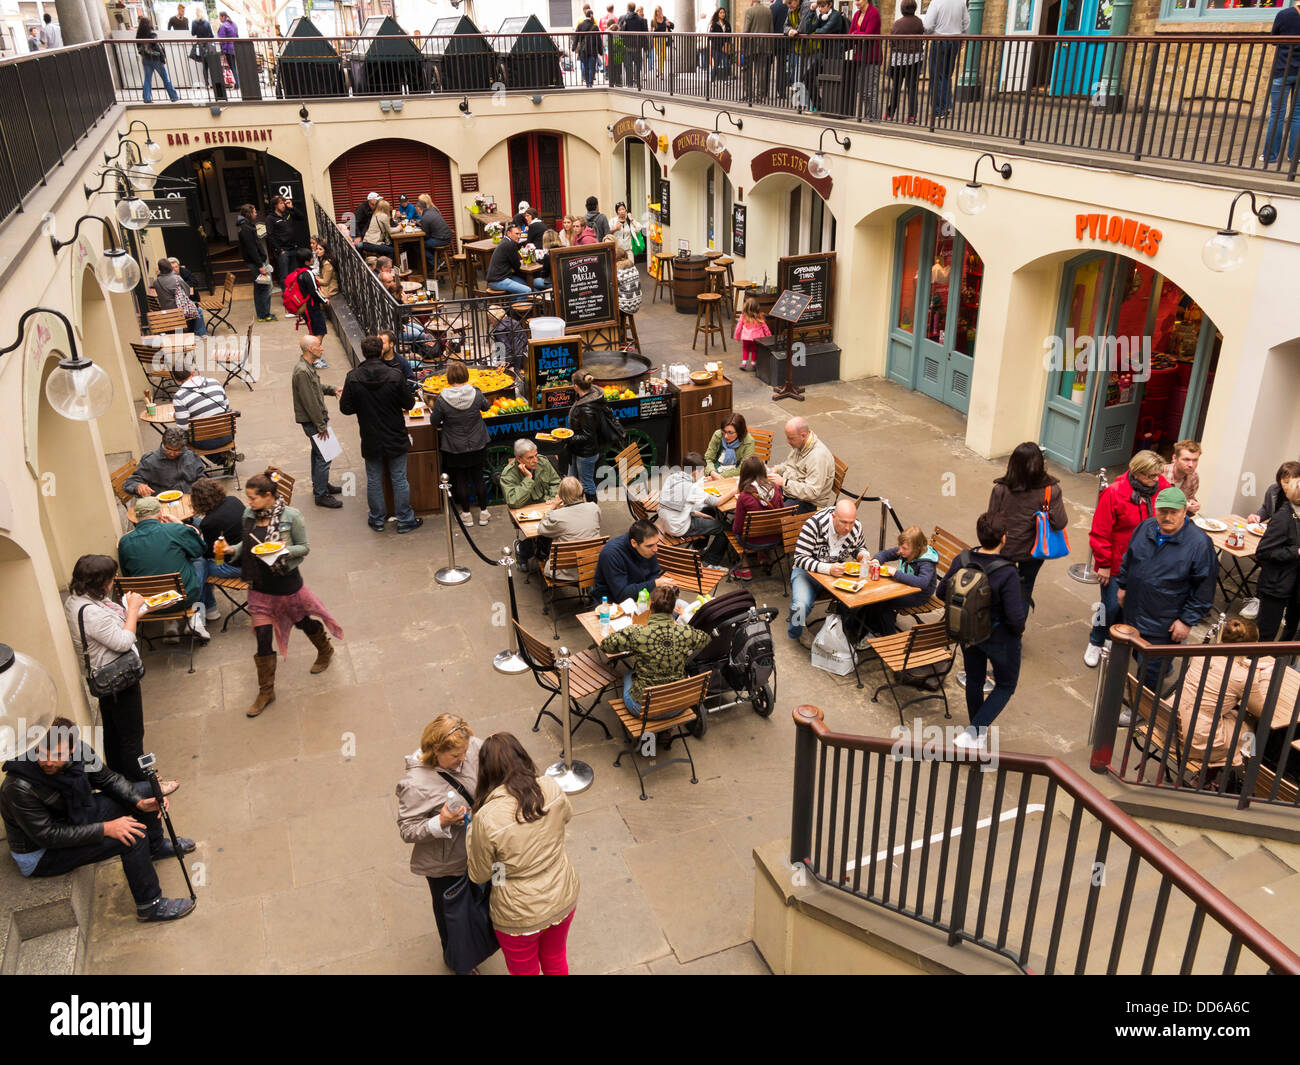 Cafes / bar in Covent Garden Market, London - Stock Image